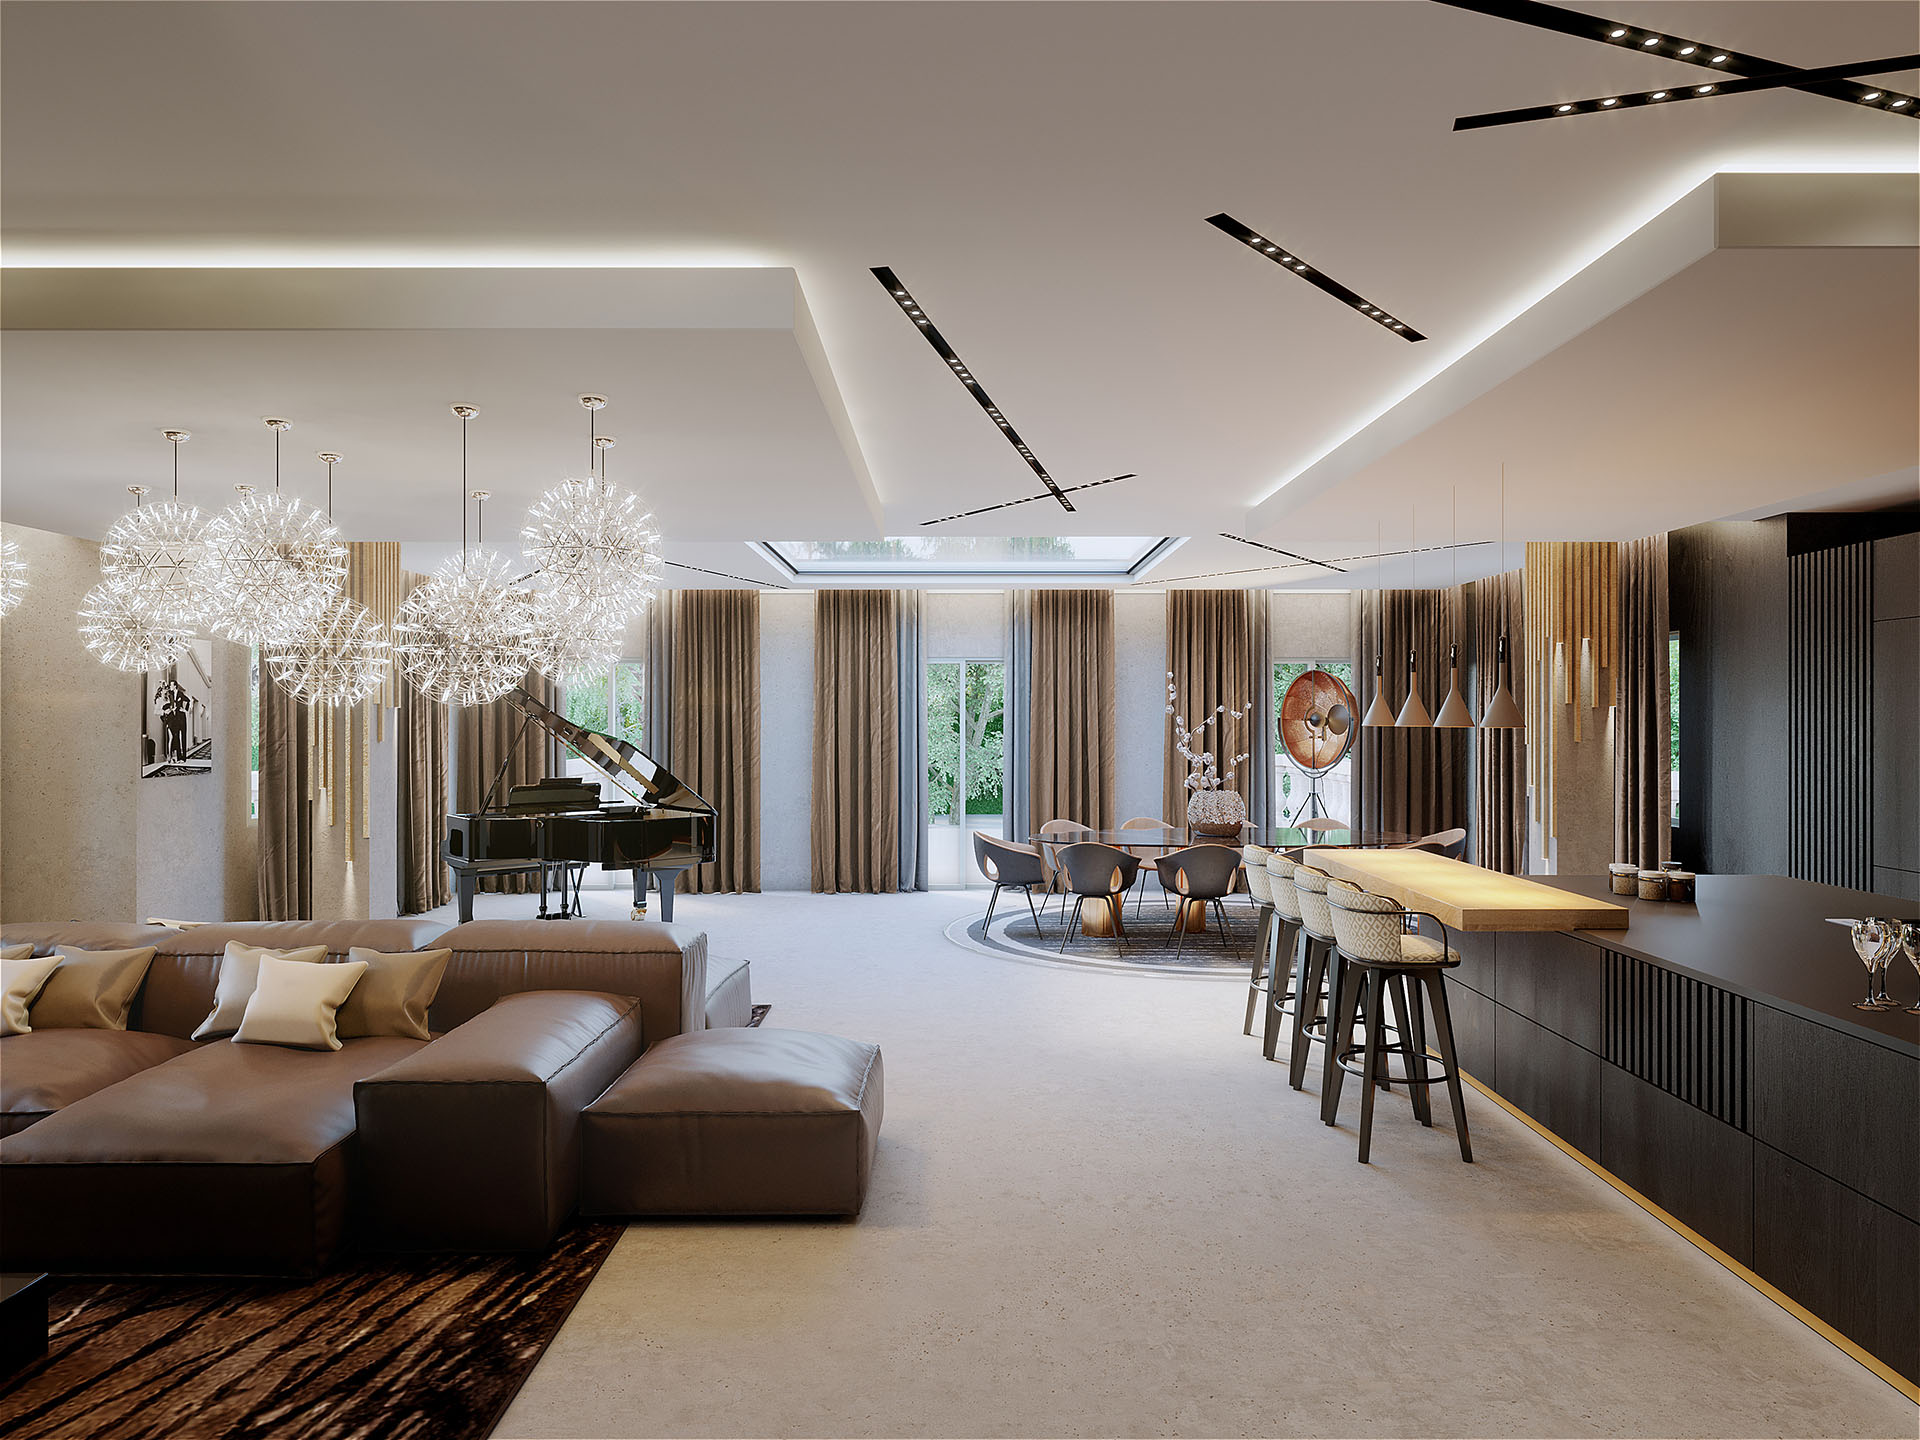 3D photorealistic image of the living room of a luxury villa